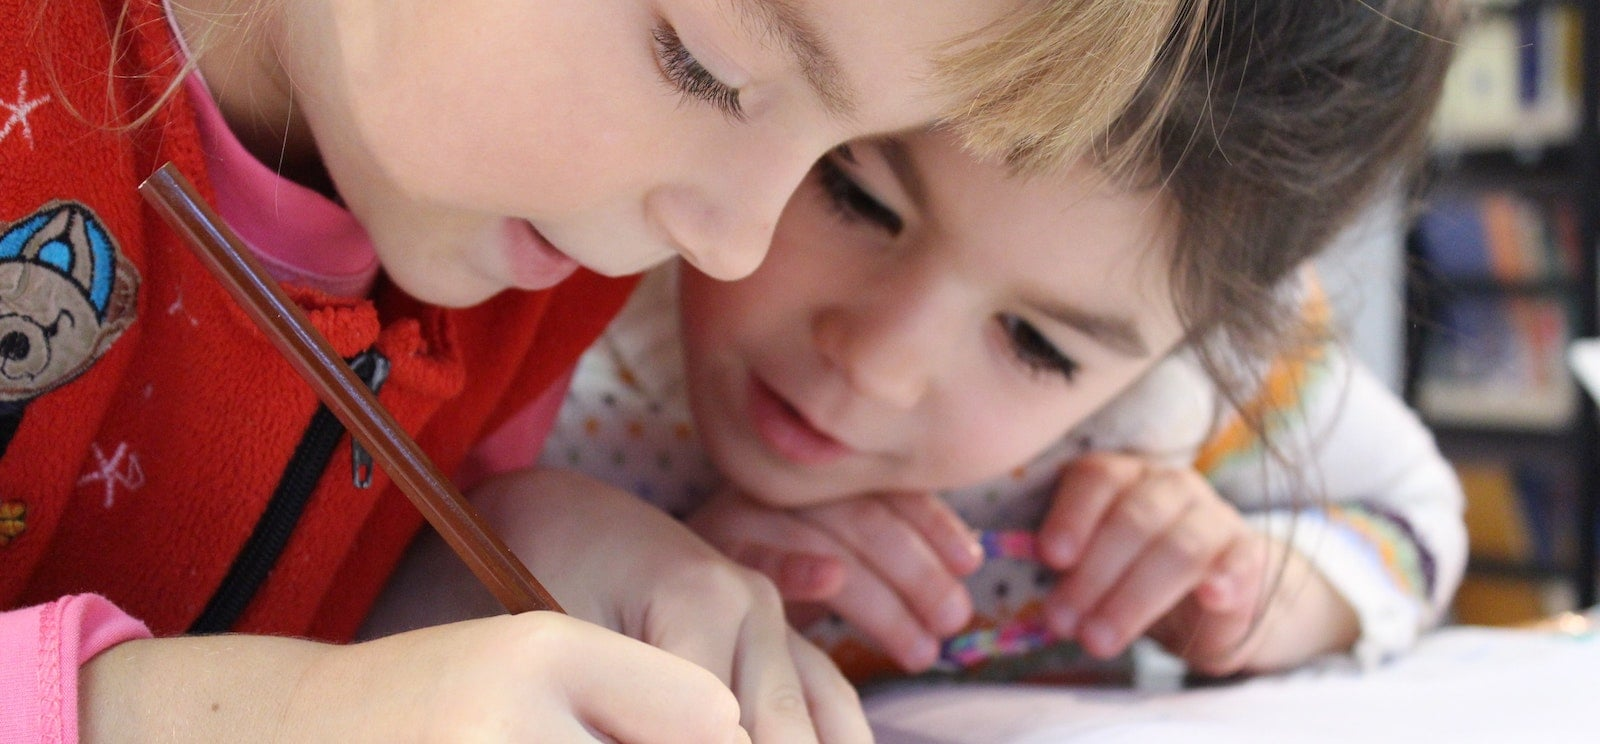 Two cute children focused on their drawing